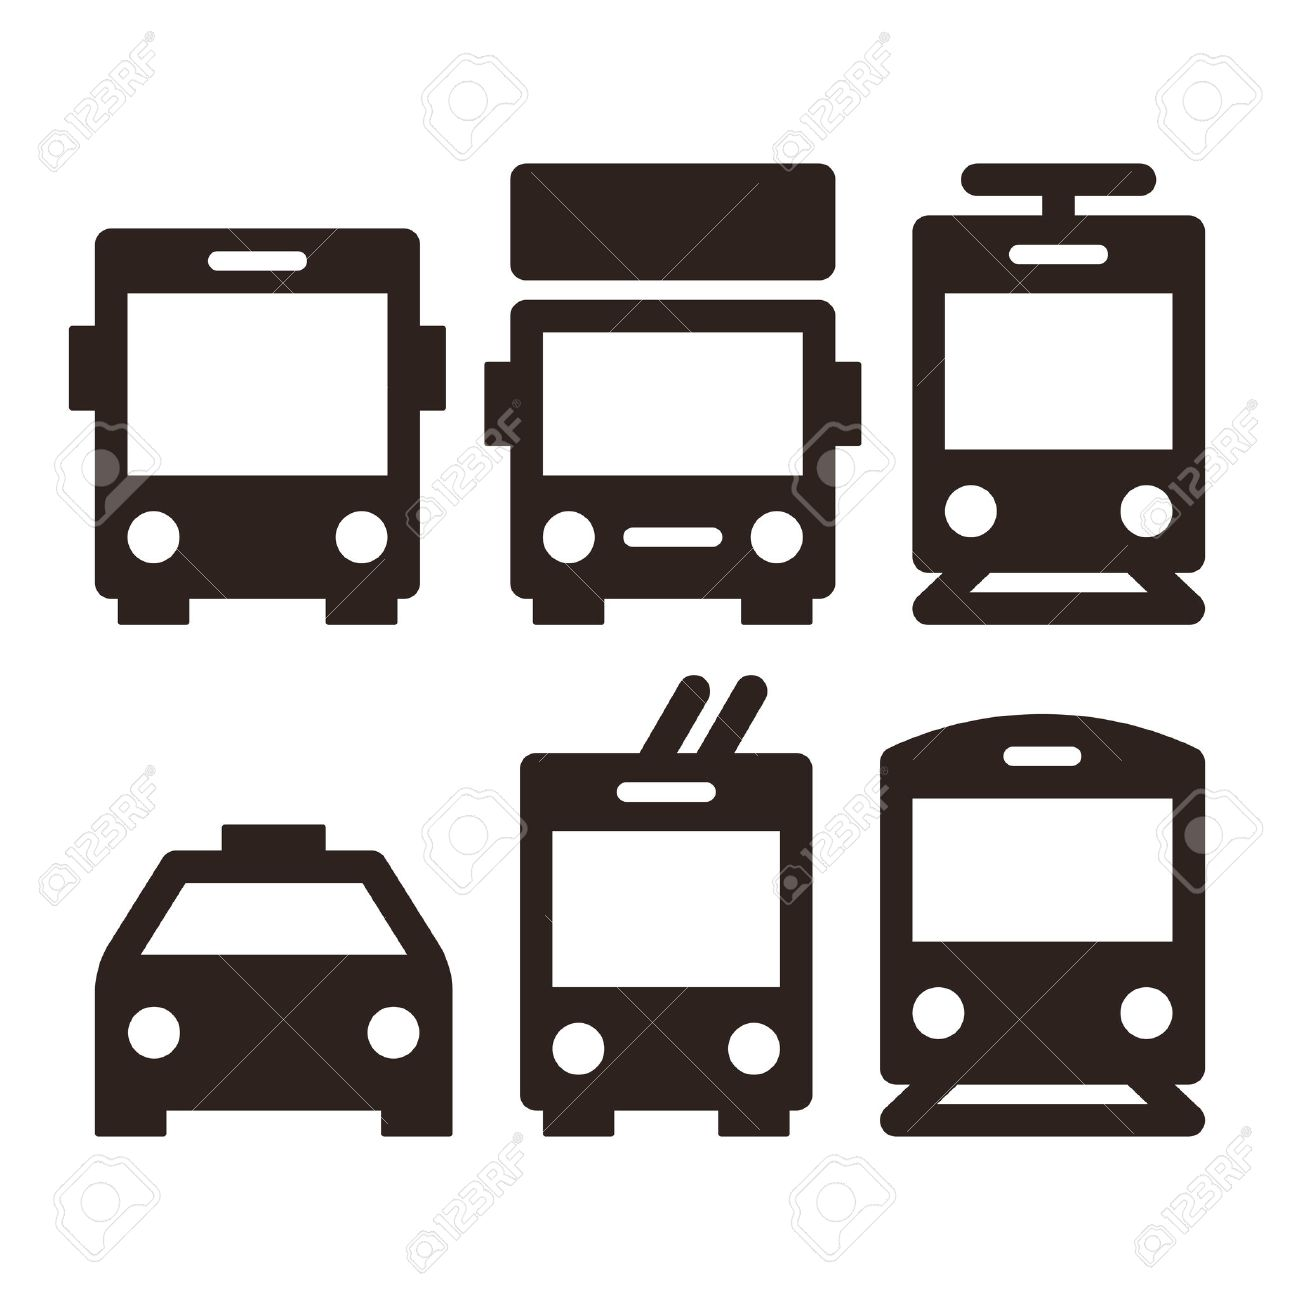 Public transport icons - bus, truck, streetcar, taxi, trolley bus and train Stock Vector - 47966945